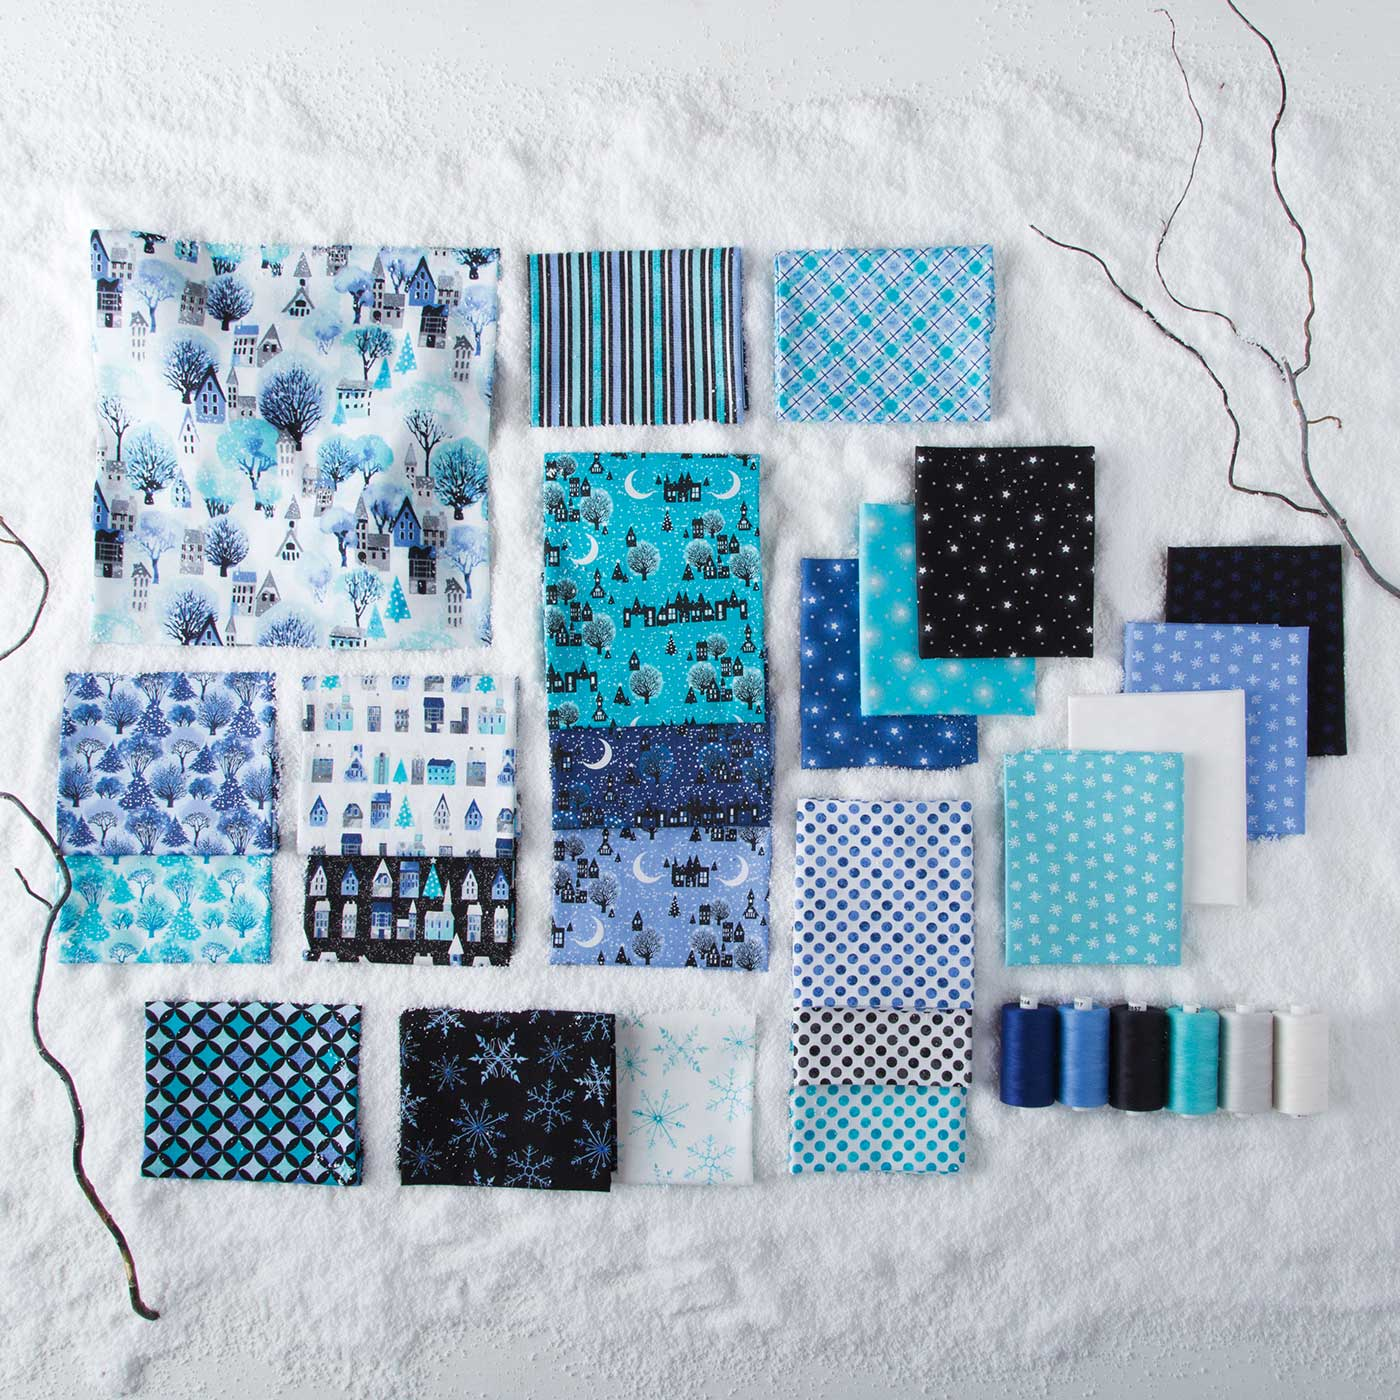 October 2018 New Kits and Collections!